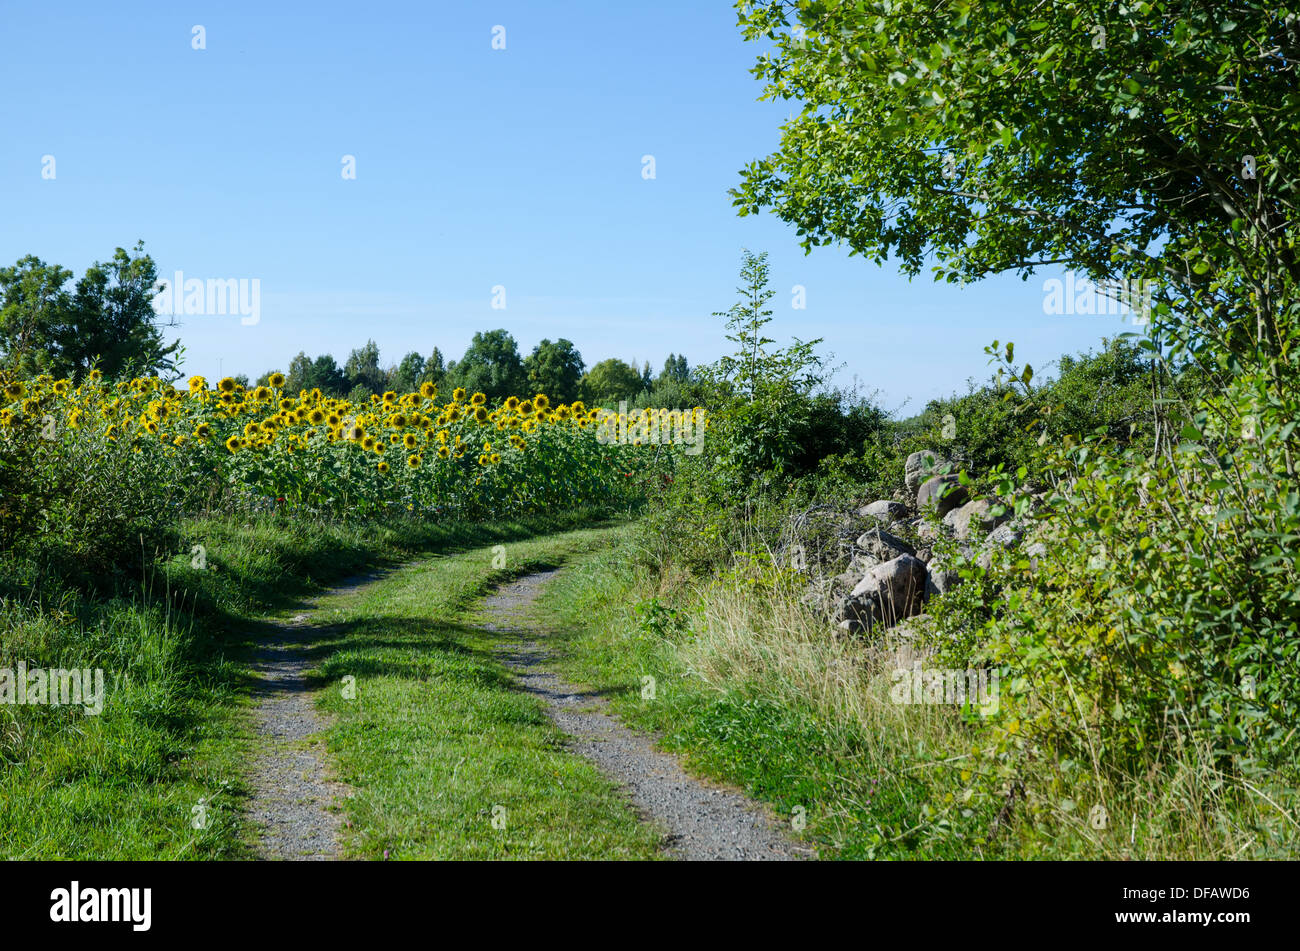 Sunflowers field by a dirt road side on the swedish island Oland. - Stock Image